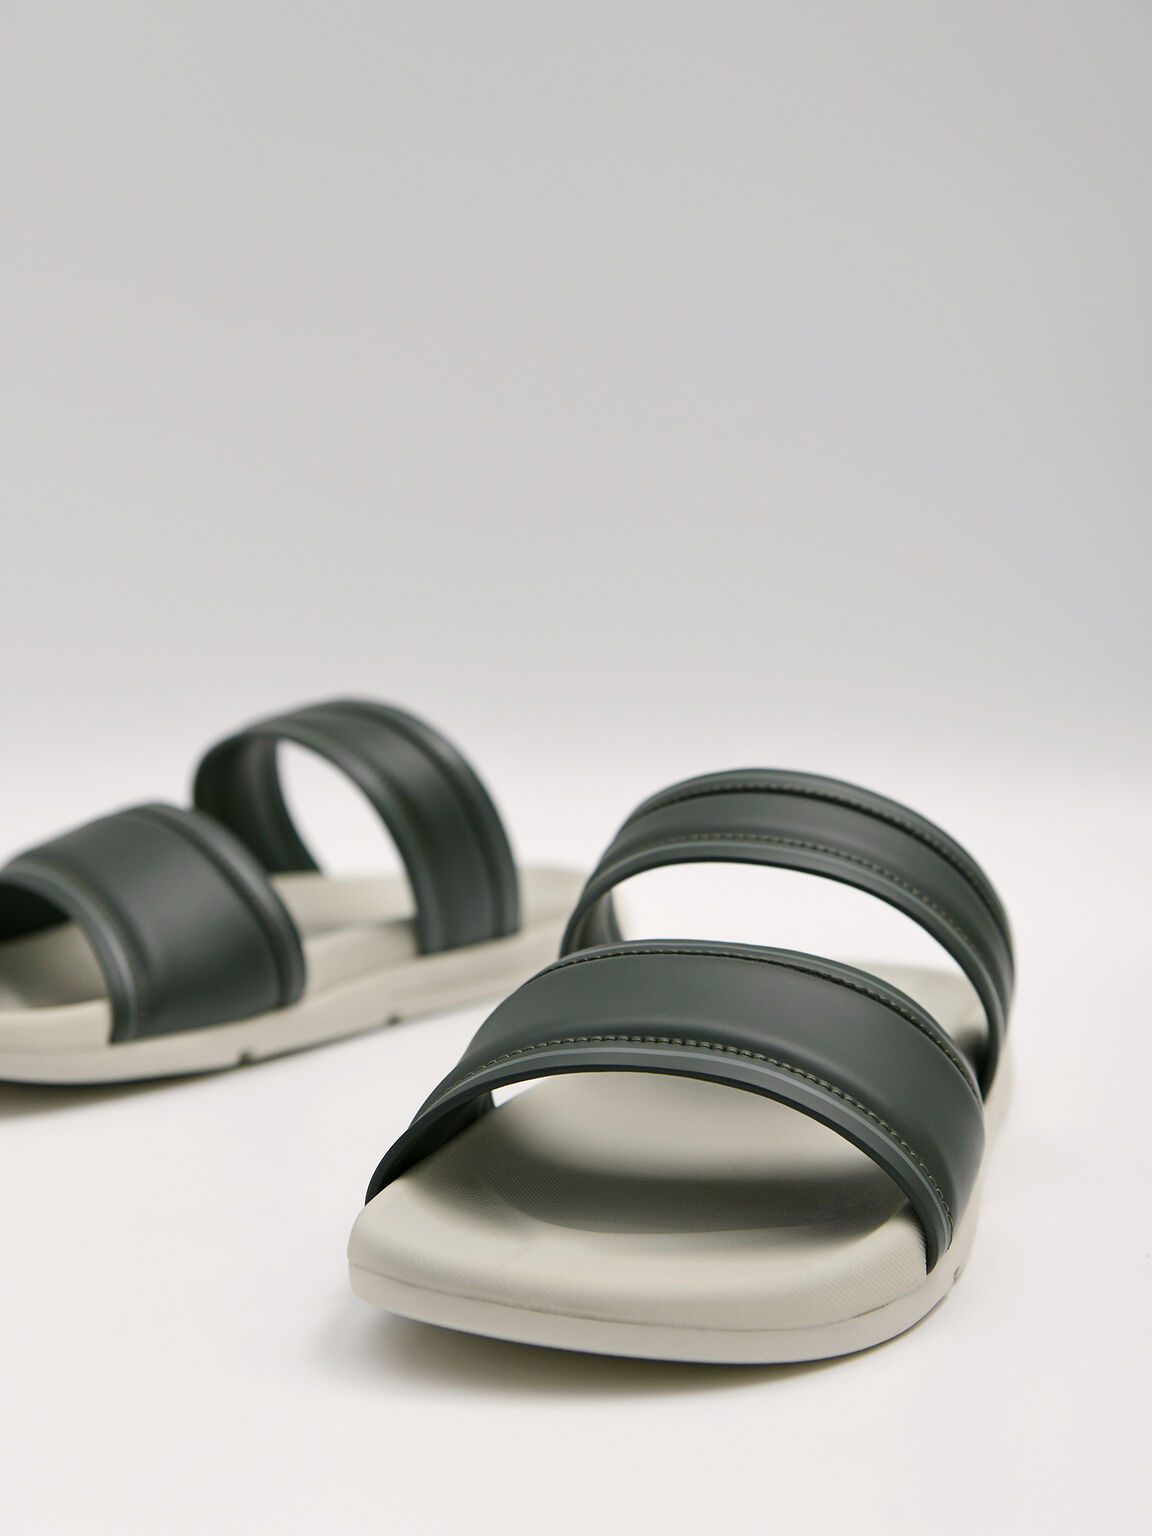 Padded Double Strap Sandals, Military Green, hi-res